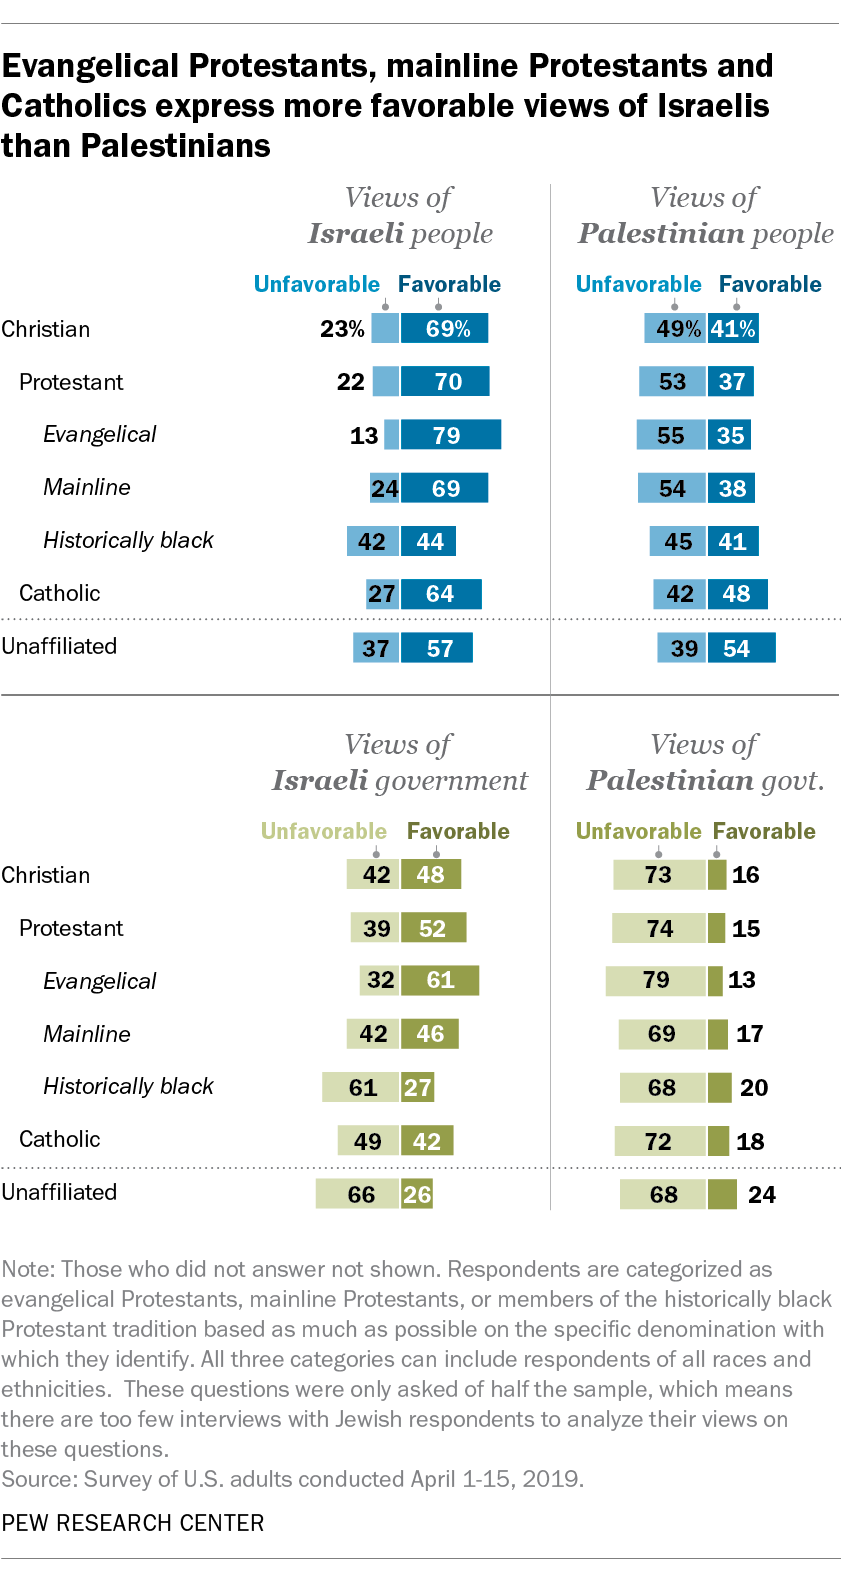 Evangelical Protestants, mainline Protestants and Catholics express more favorable views of Israelis than Palestinians